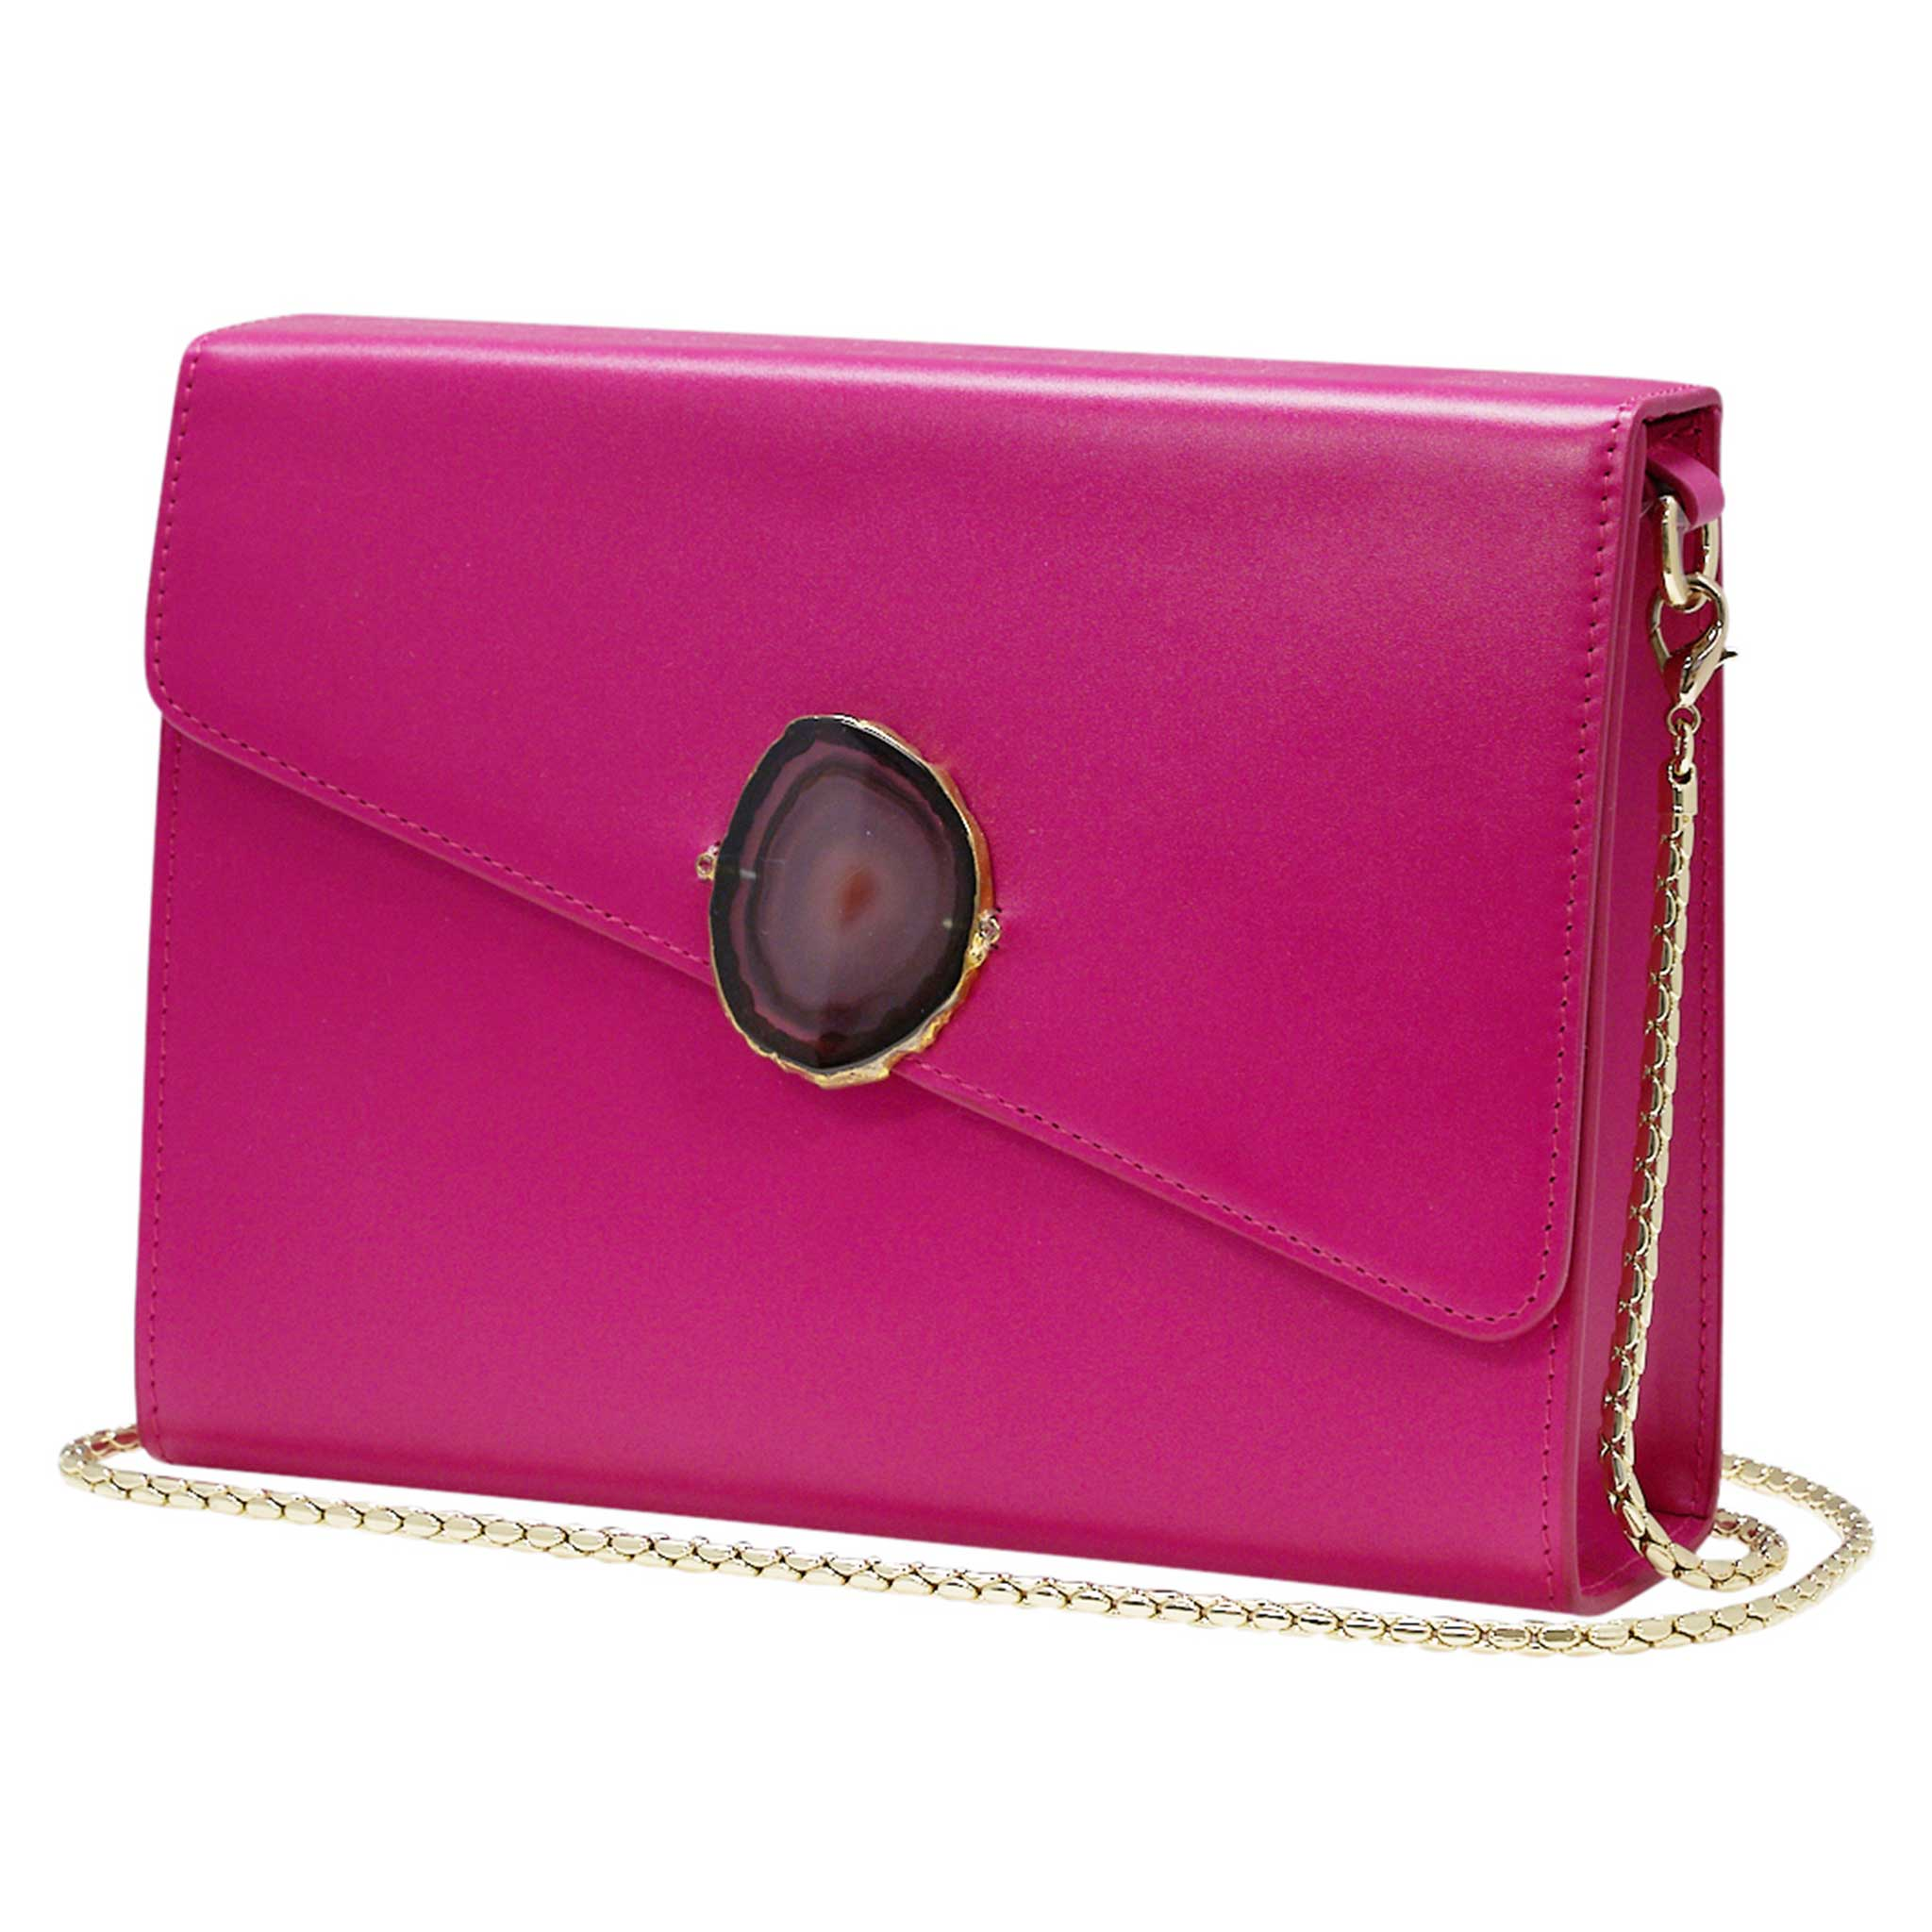 LOVED BAG - PINK RUBY LEATHER WITH BROWN AGATE - 1.01.004.052